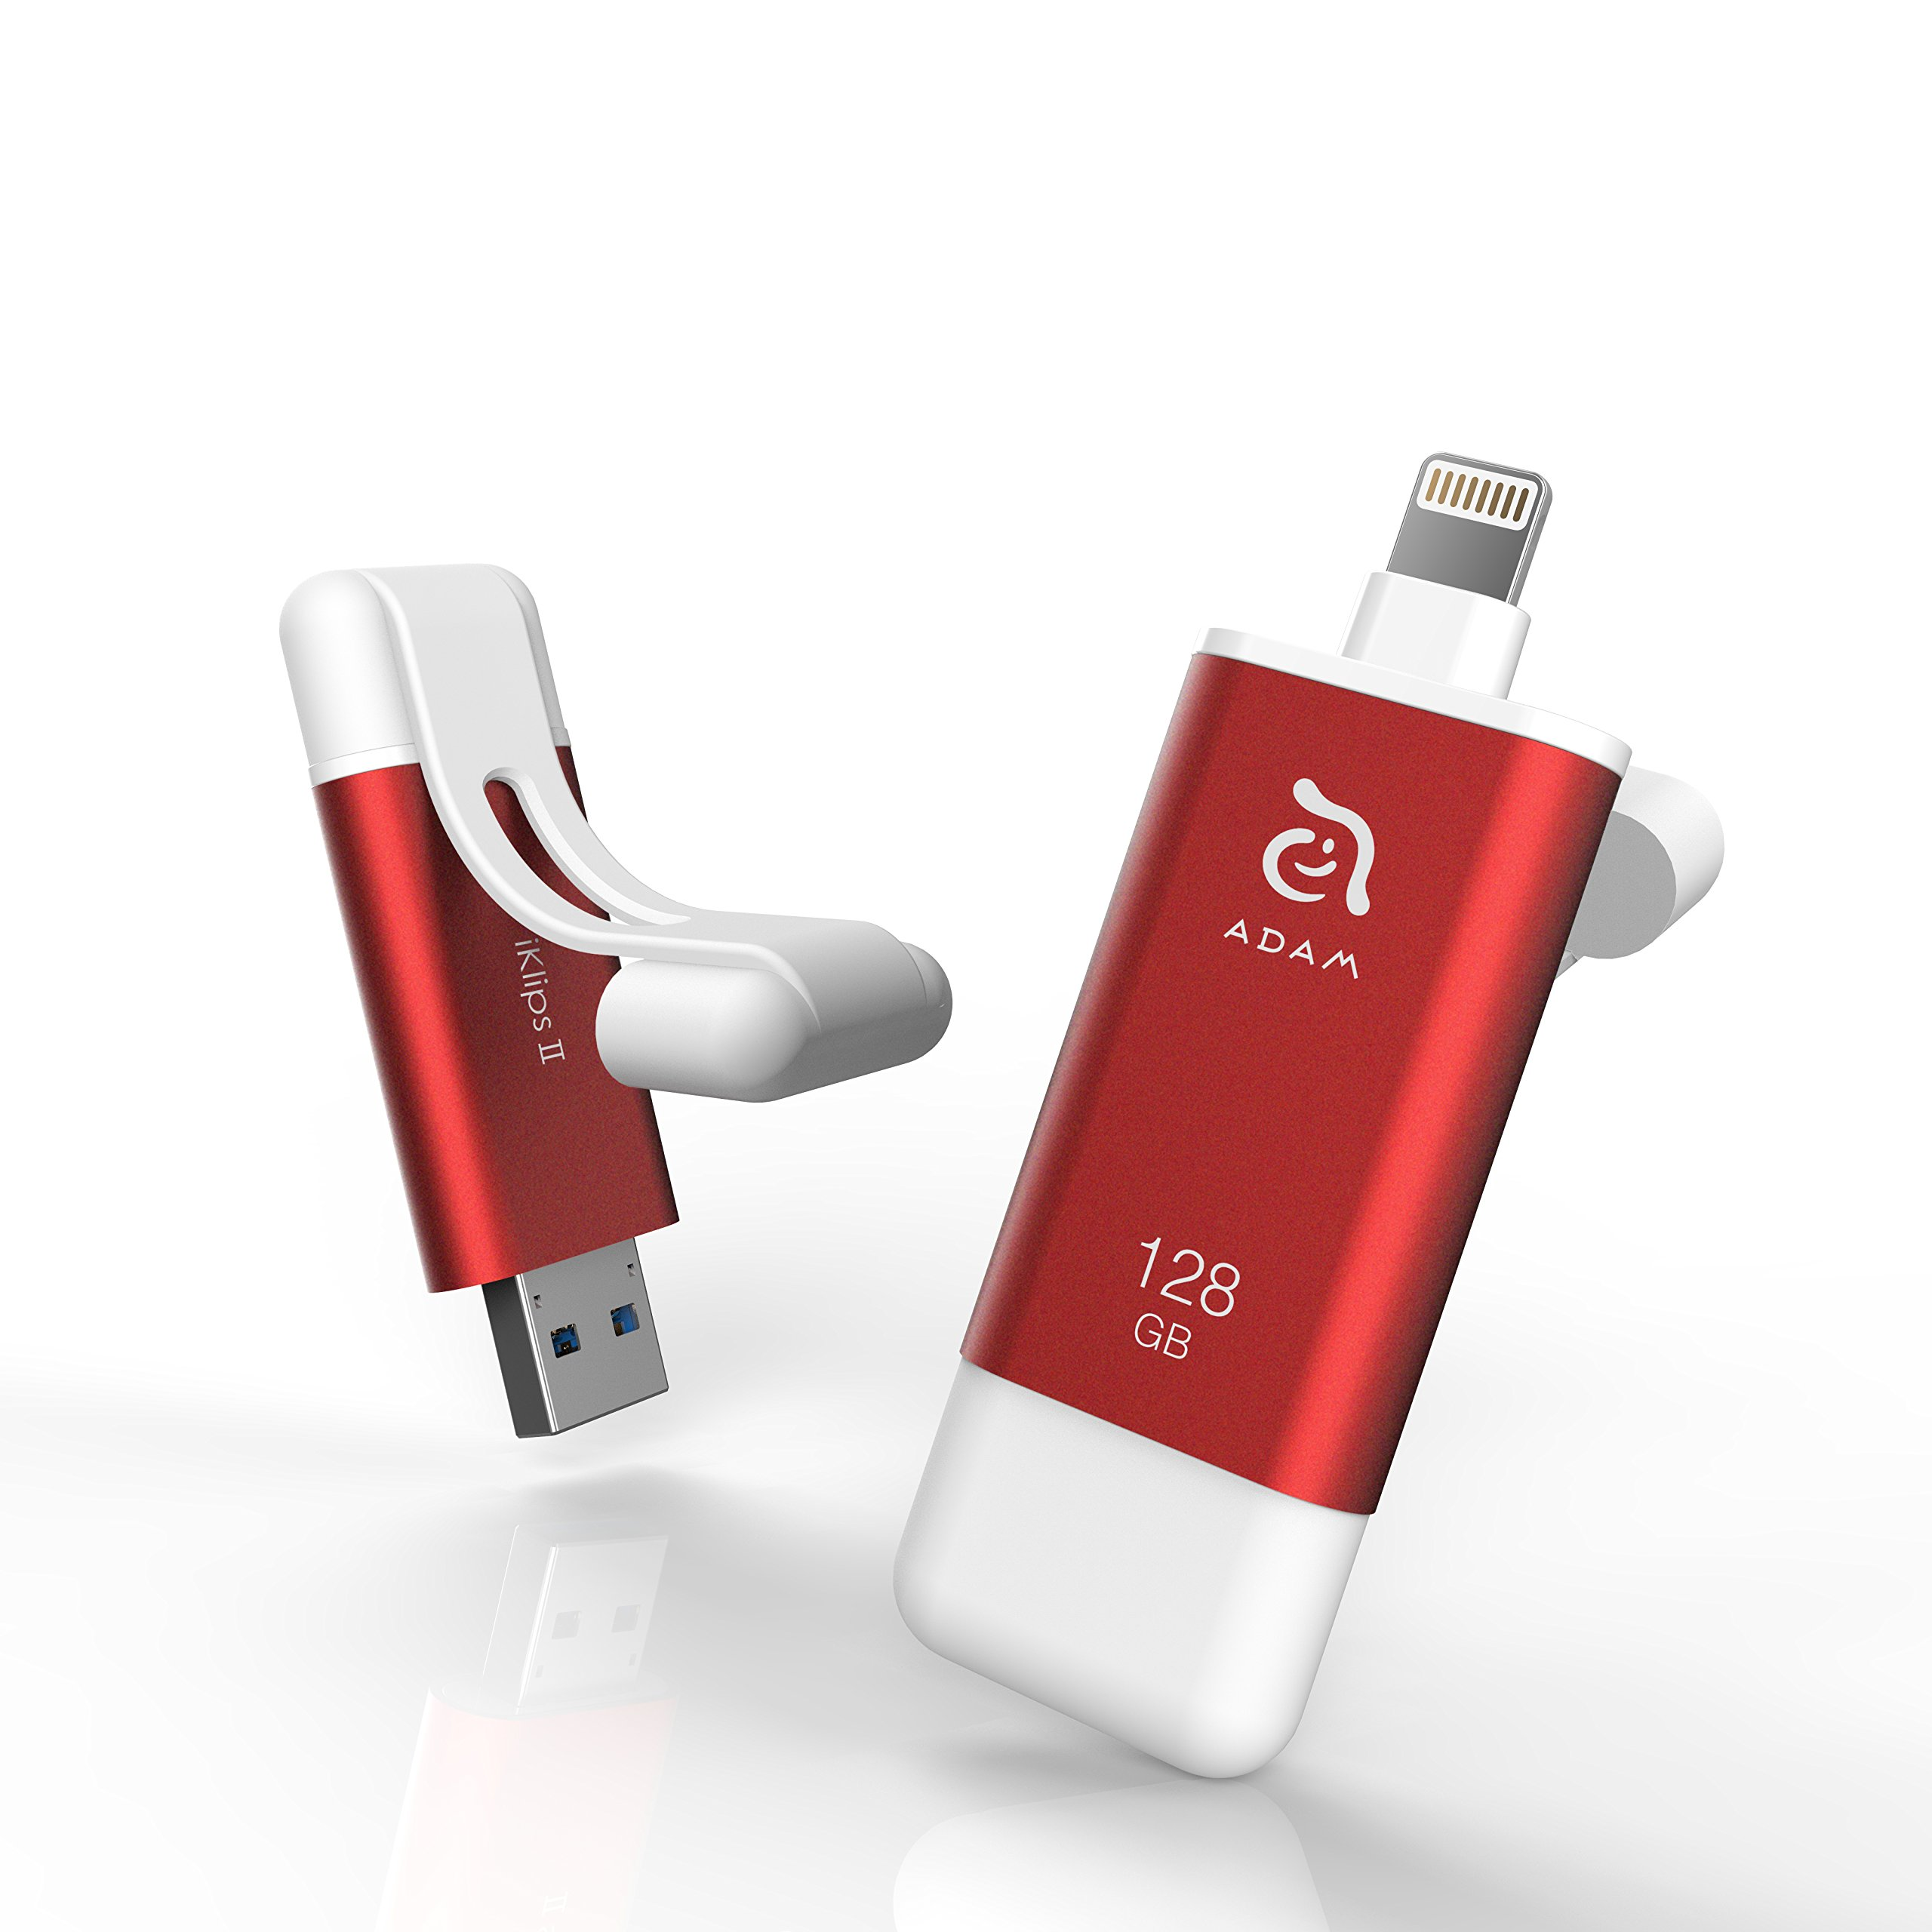 iKlips II 128GB USB 3.1 Lightning Flash Drive External Memory Storage, Extended Connector Fits With Any Case, For Apple, iPhone, iPad, Mac, iOS, Android & PC, MFi Certified, Red by Adam Elements